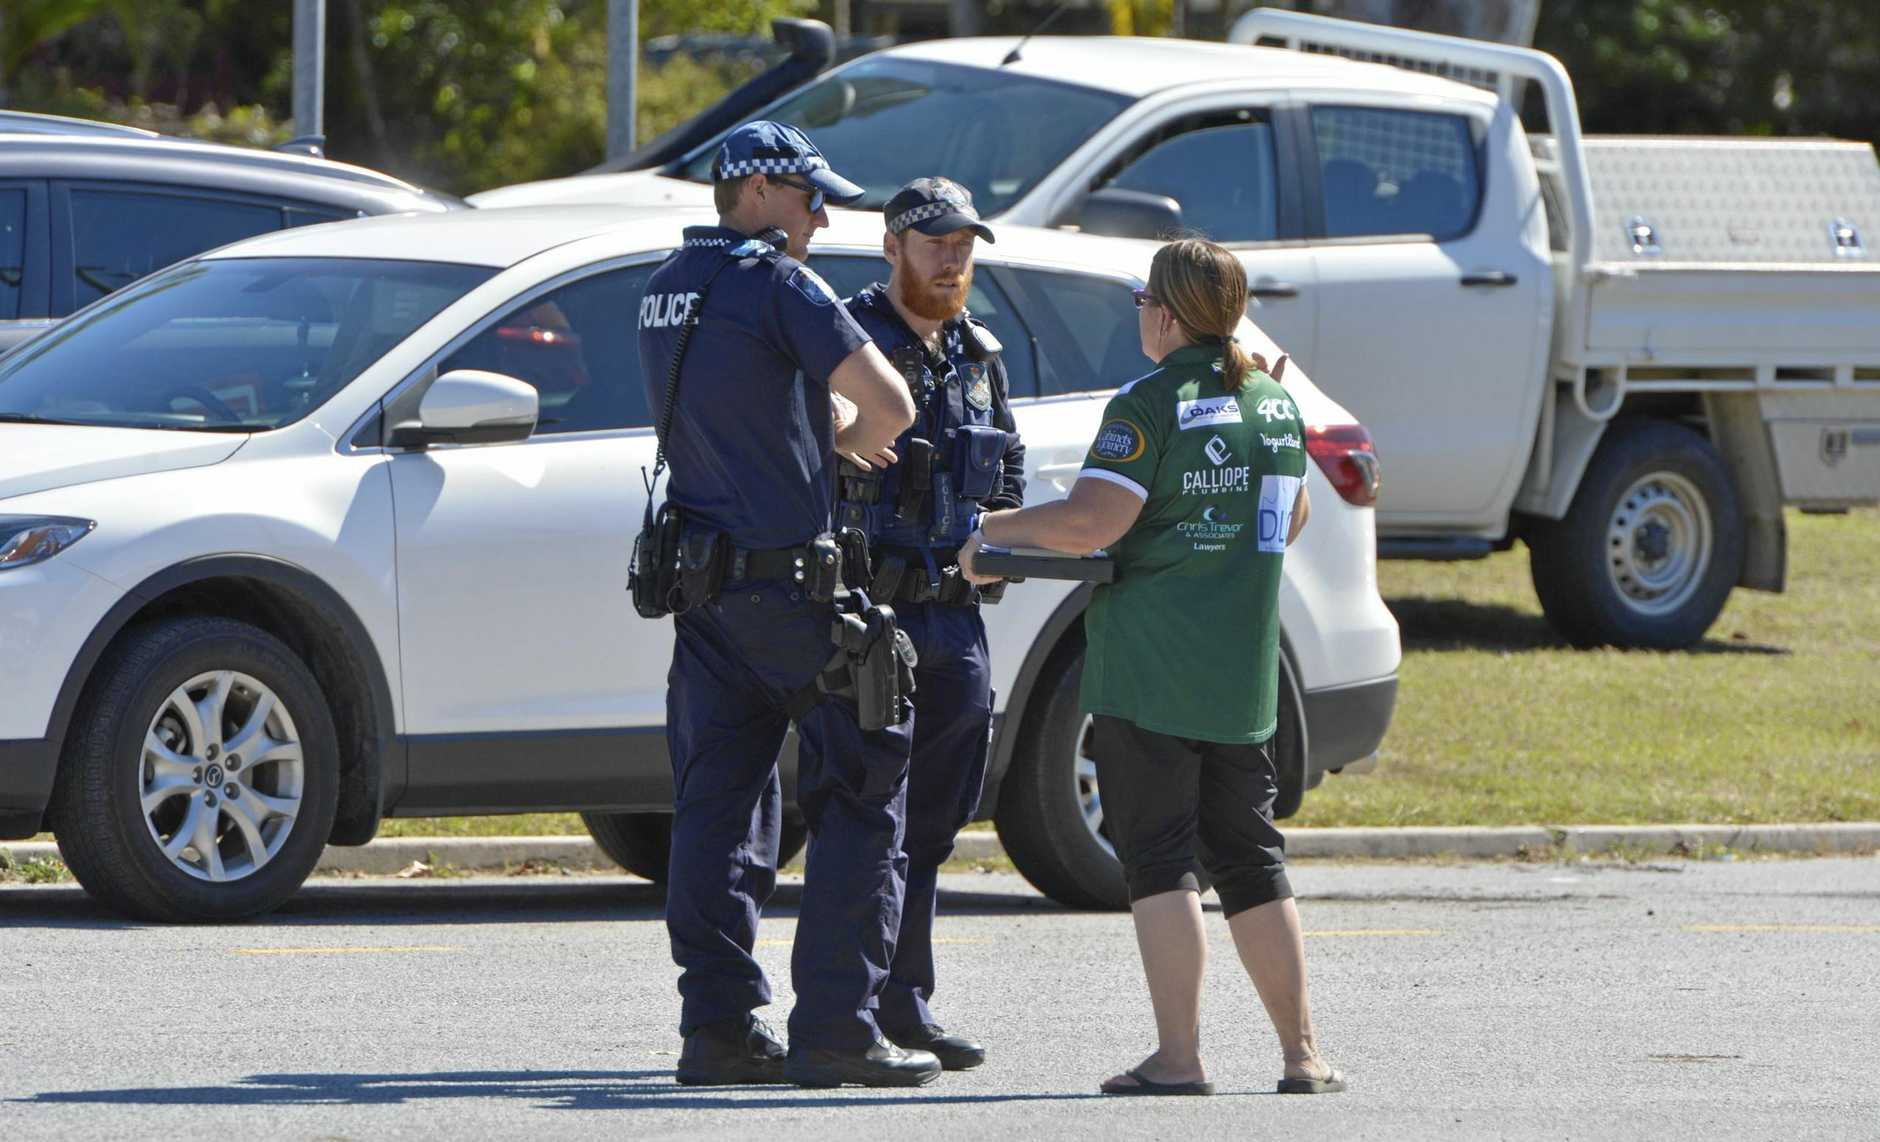 BRAWL: Police speak to a witness after an all-in brawl at the Clinton football fields during an U17 Australian Rules football game